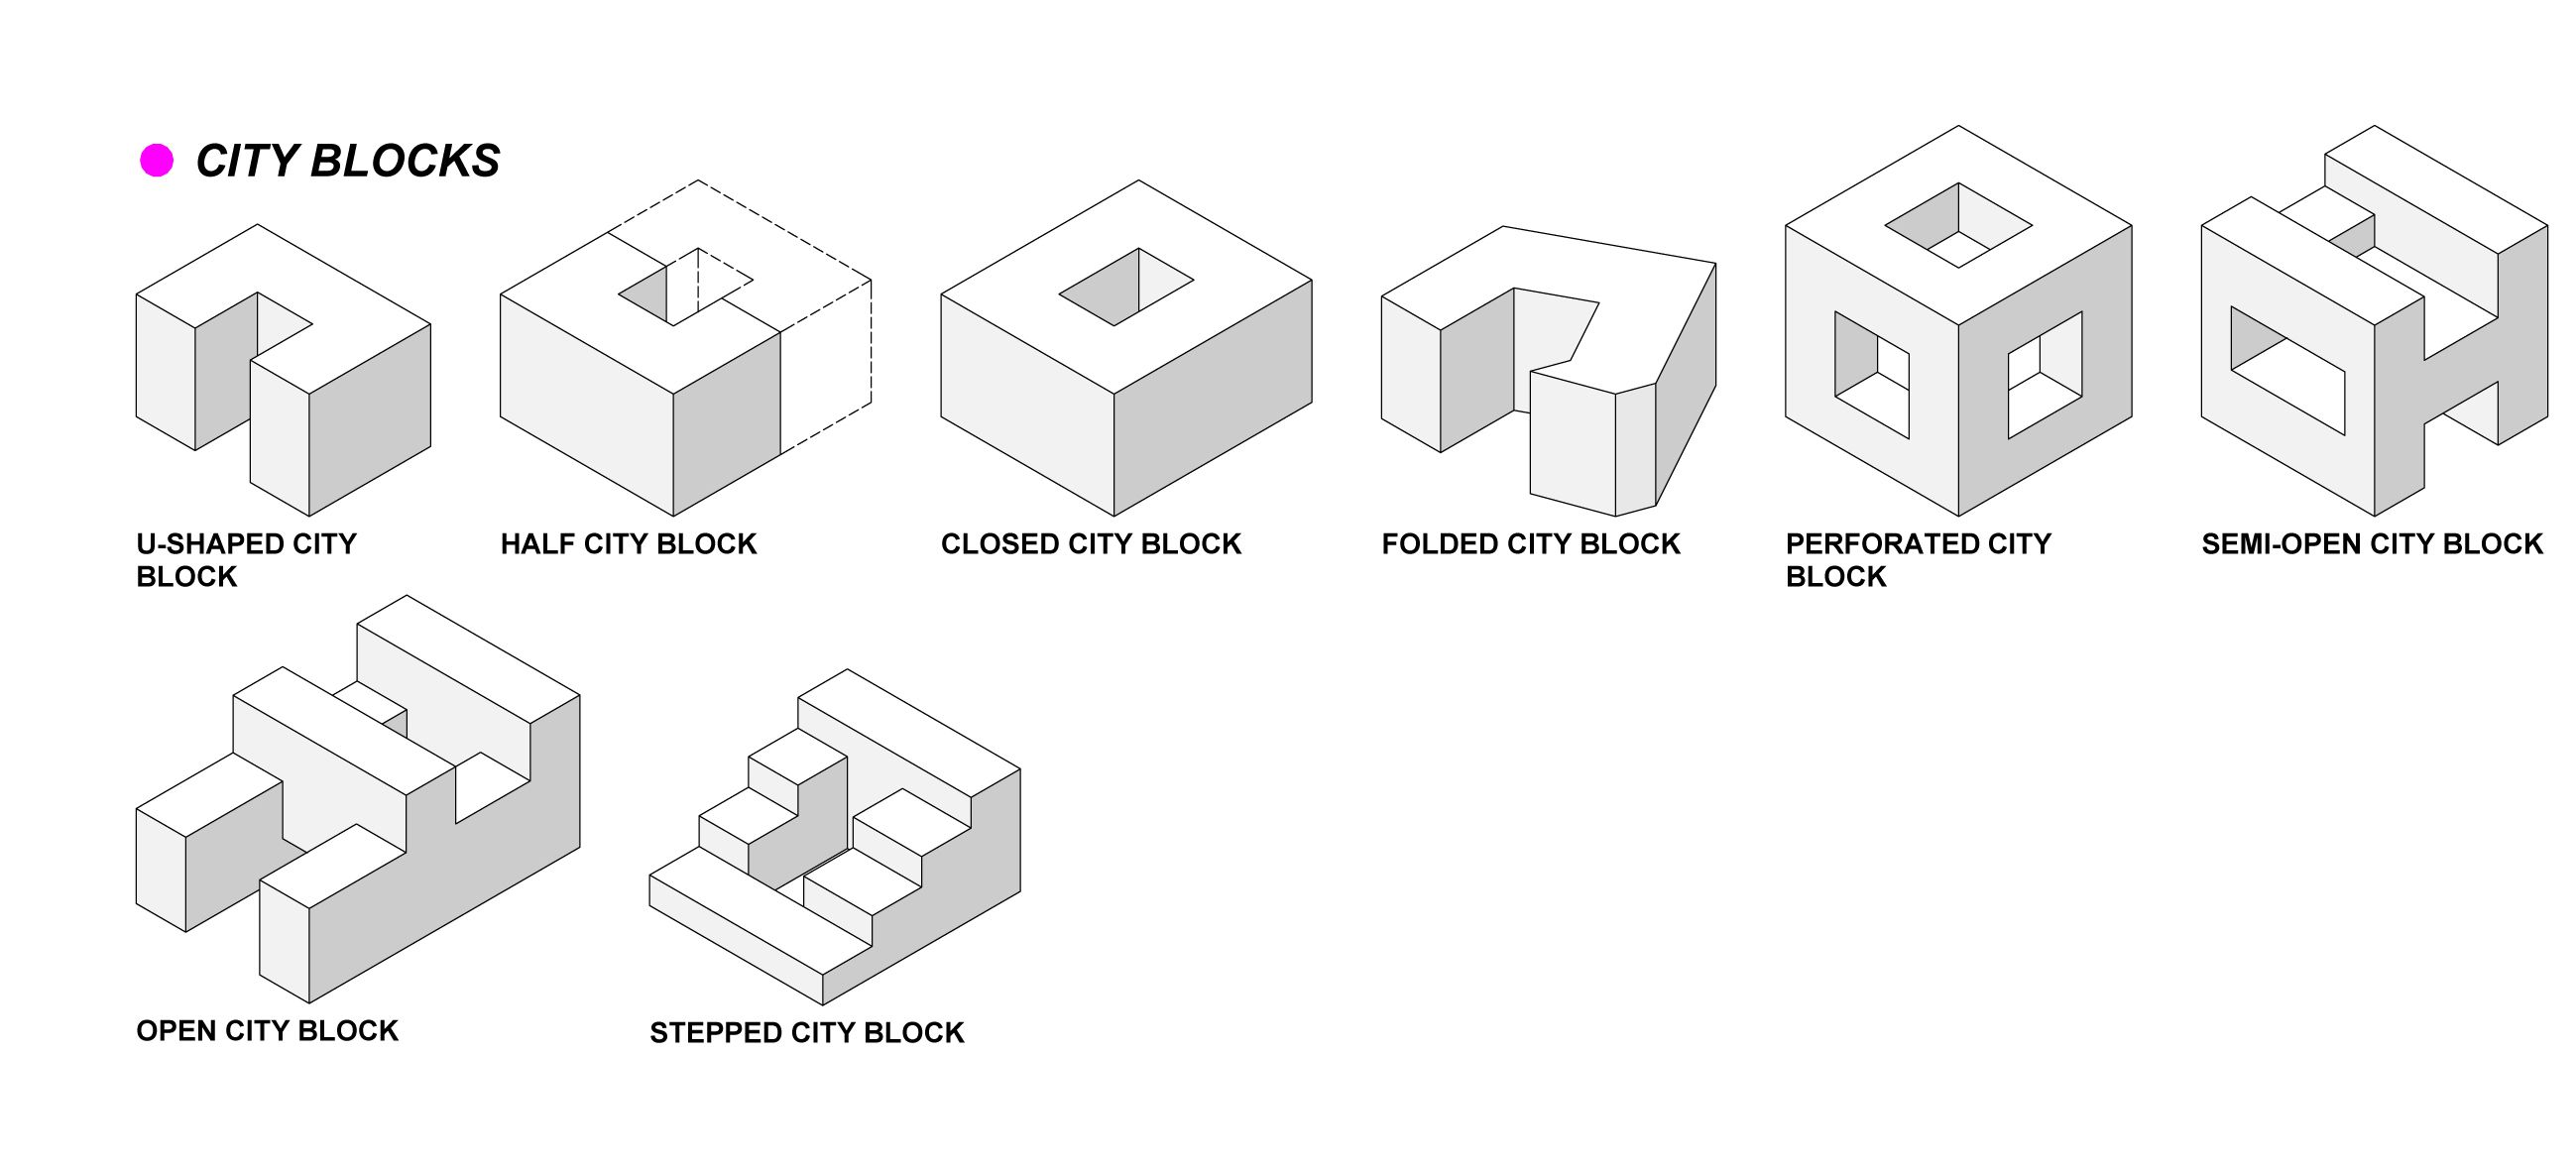 Formal Typologies Of Dense Residential Architectures Residential Architecture Typology Architecture Urban Design Architecture